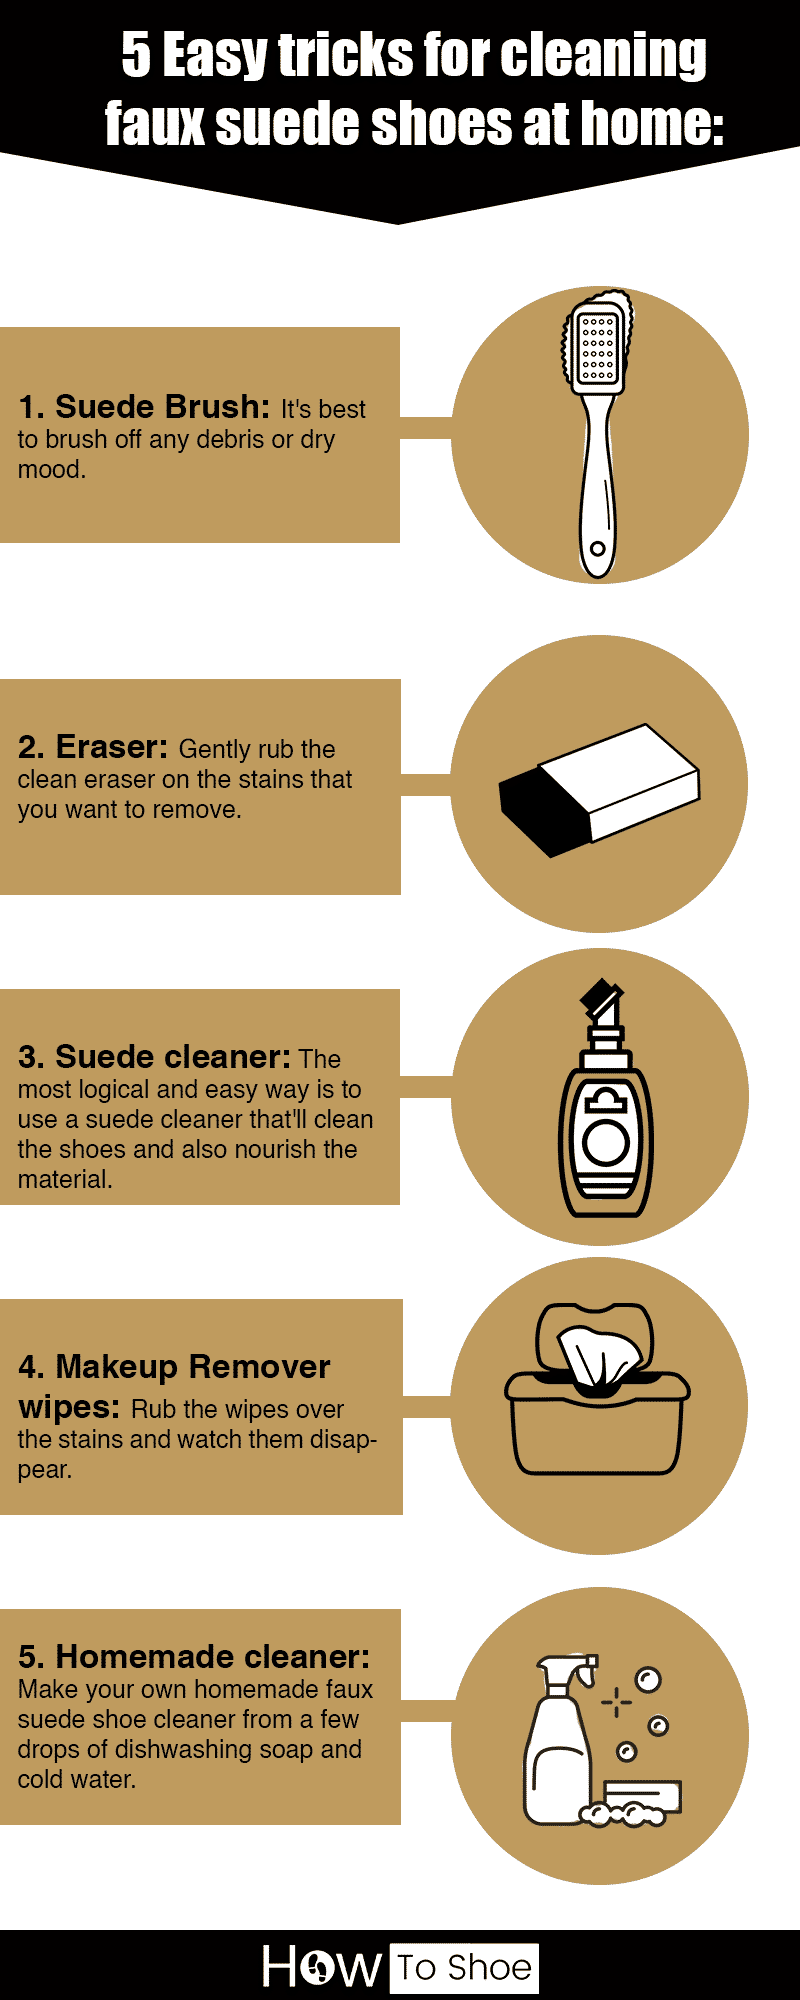 How To Clean Faux Suede Shoes—5 Easy Tips To Keep Faux Suede Pristine